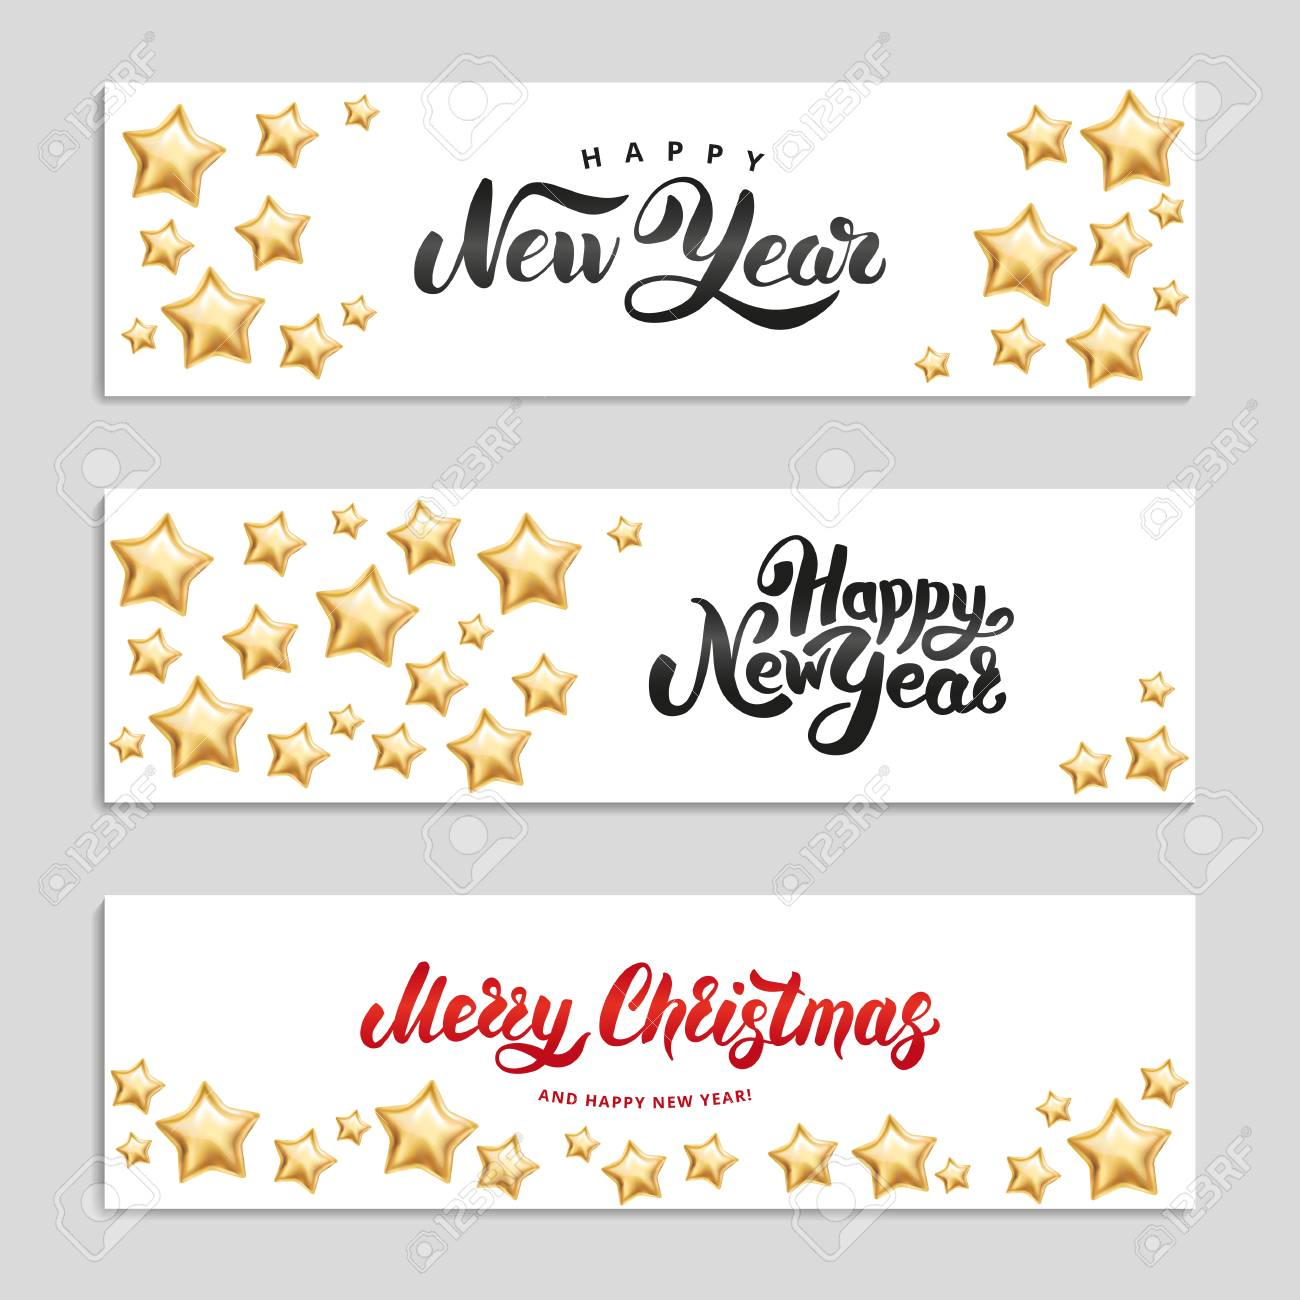 gold star happy new year invitation background banners christmas banner text line